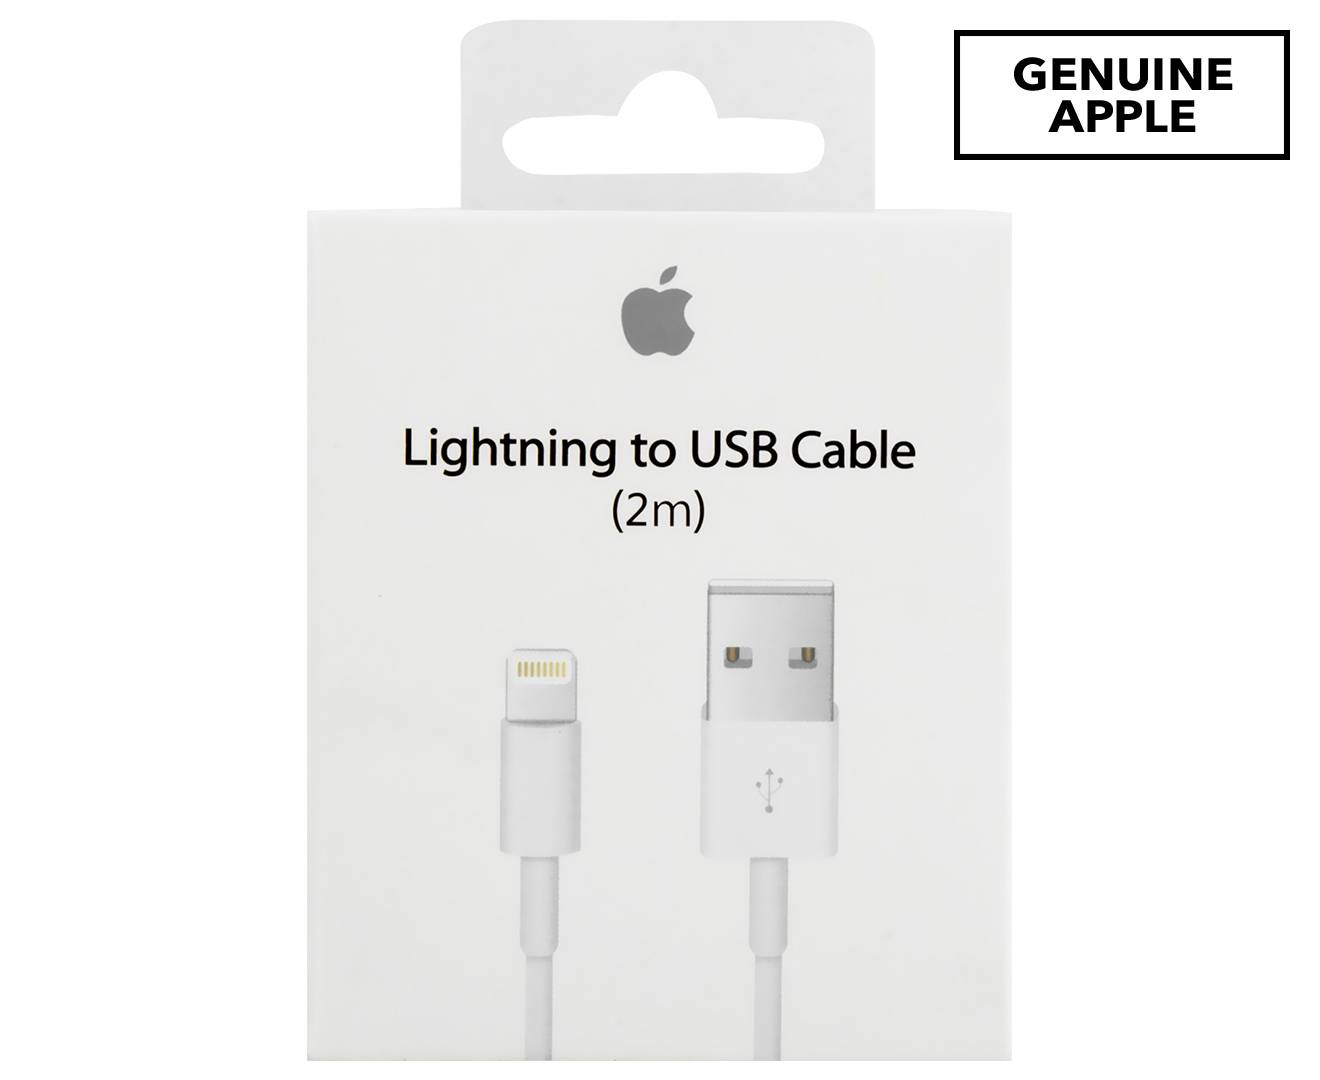 4ad24b0e902 Apple Genuine 2m Lightning to Usb Cable - White | Catch.com.au